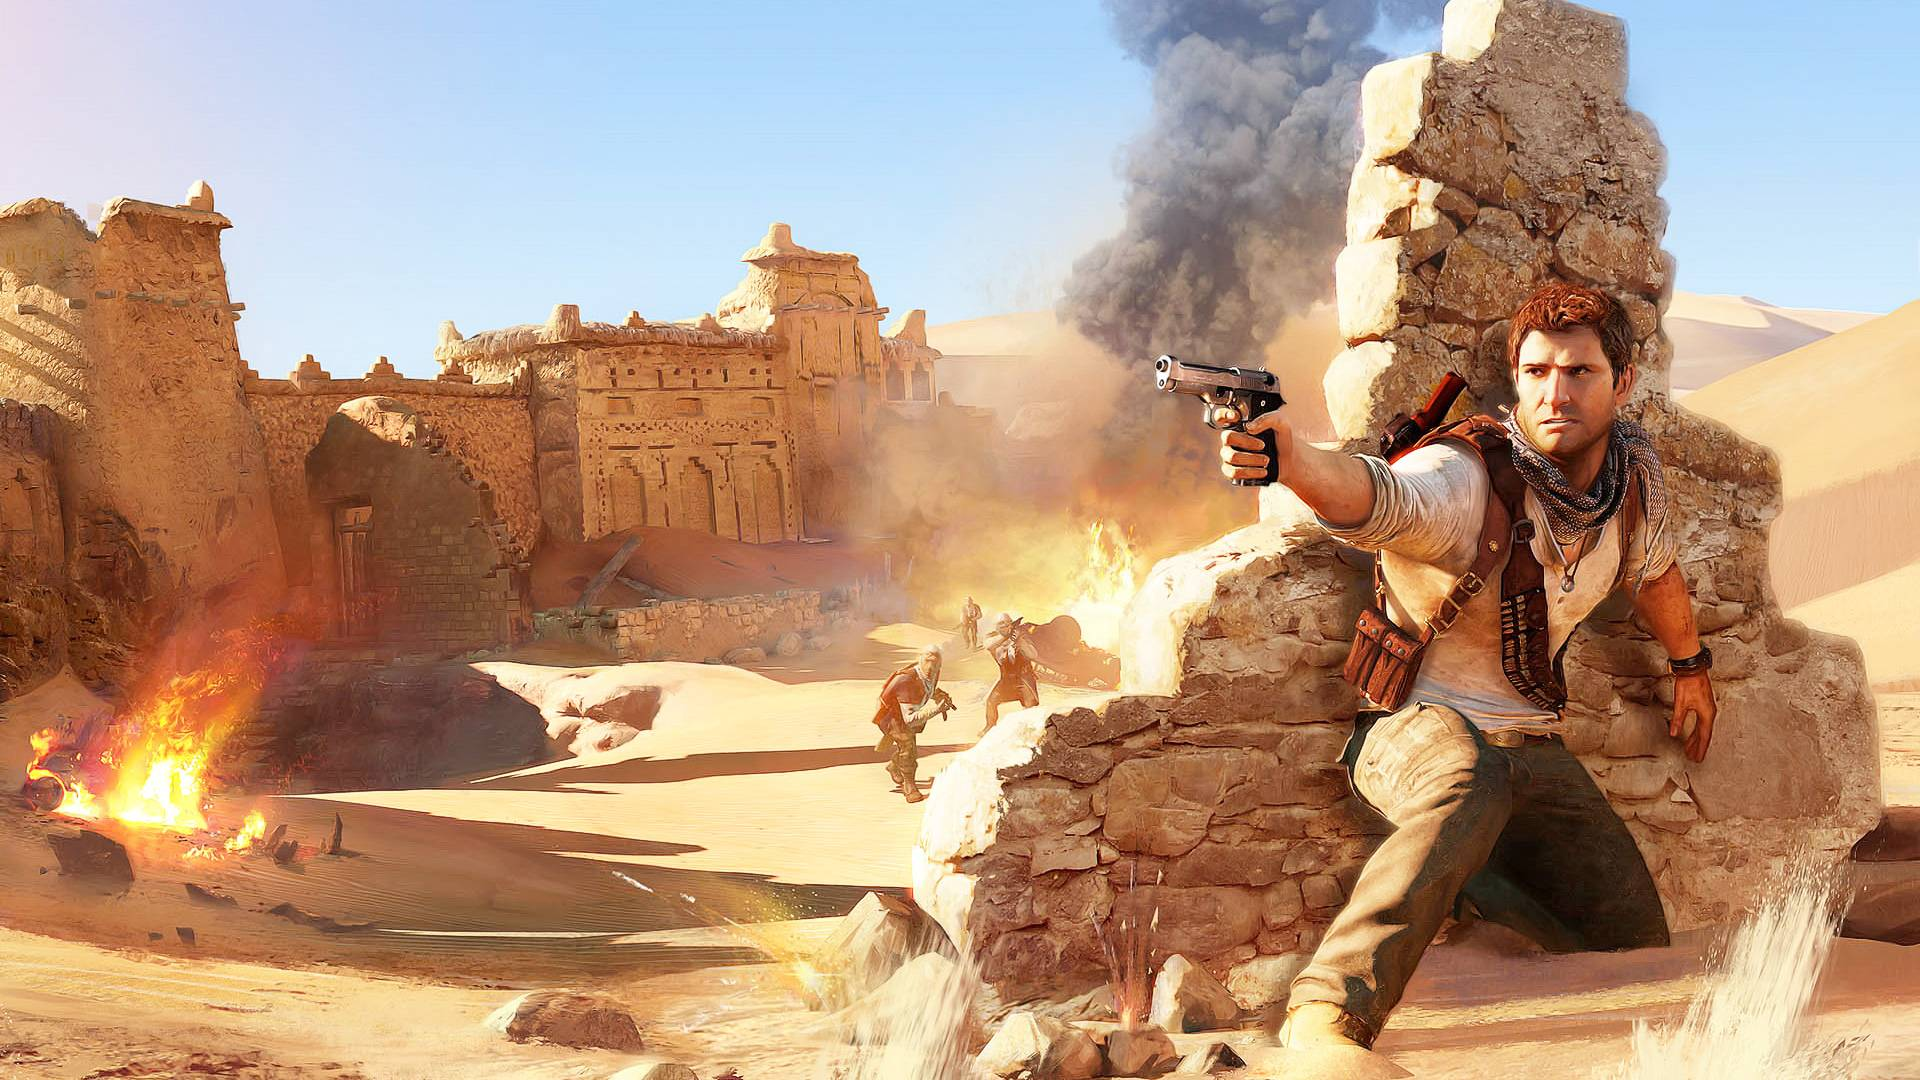 Uncharted 3 Wallpapers in HD « GamingBolt.com: Video Game News ...